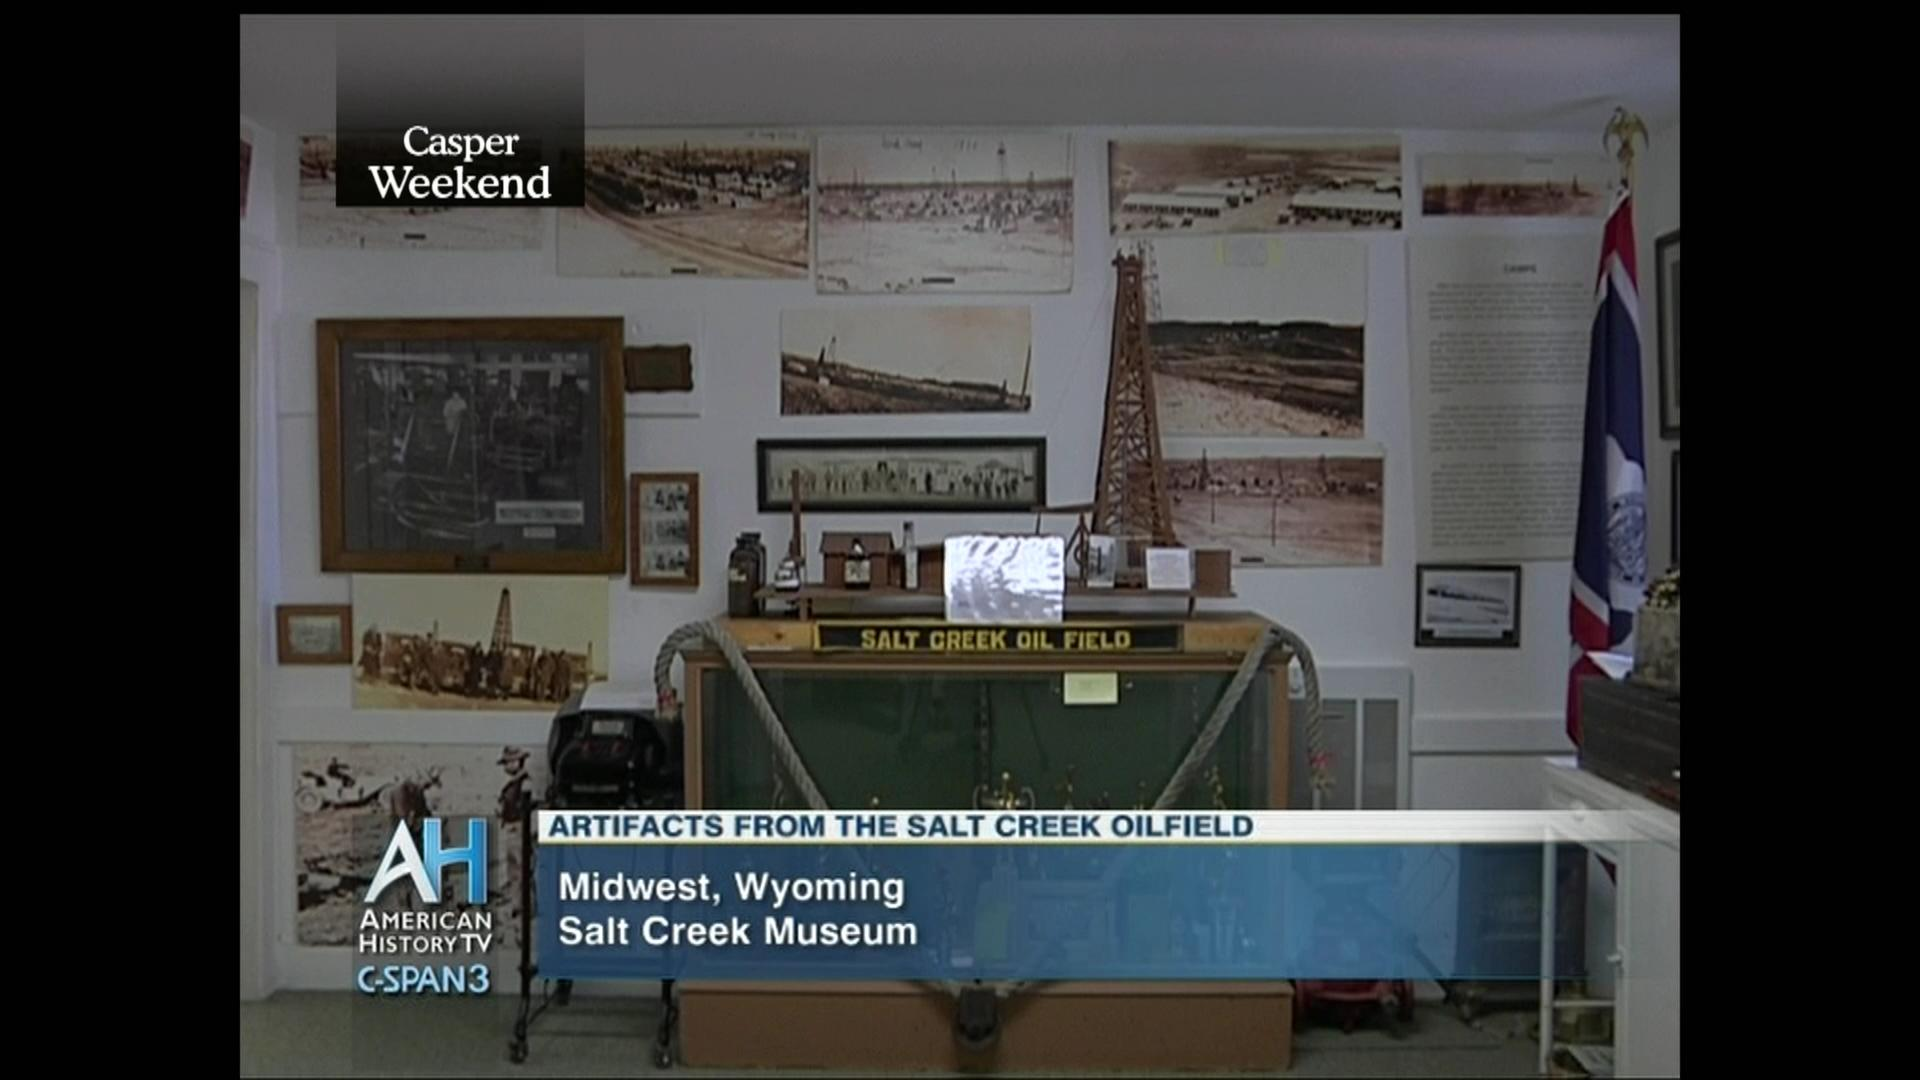 Tour Salt Creek Museum Casper Wyoming, Jul 8 2014 | Video | C SPAN.org